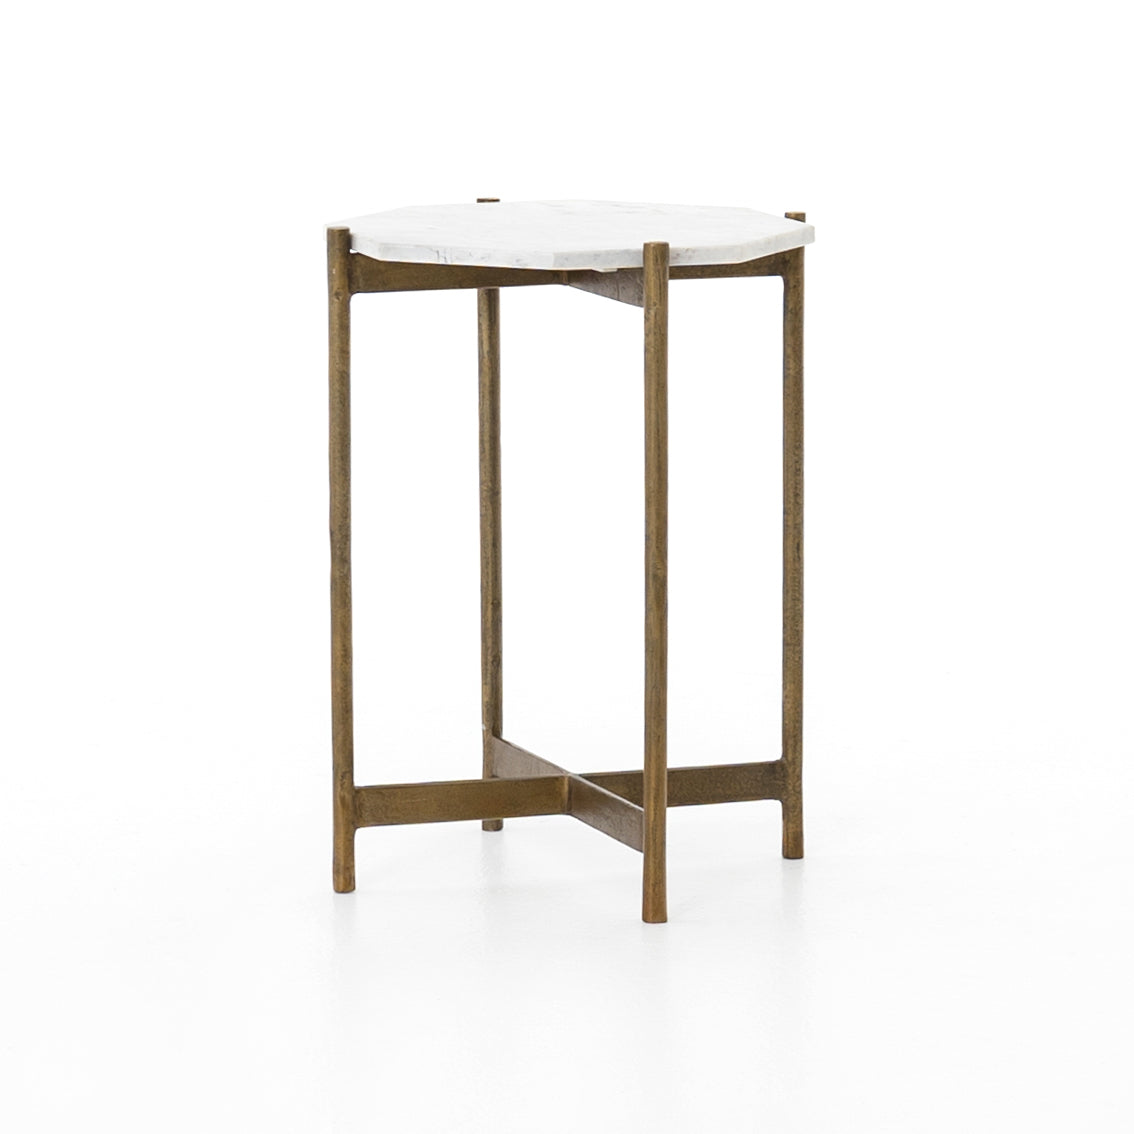 Adair Side Table - Raw Brass